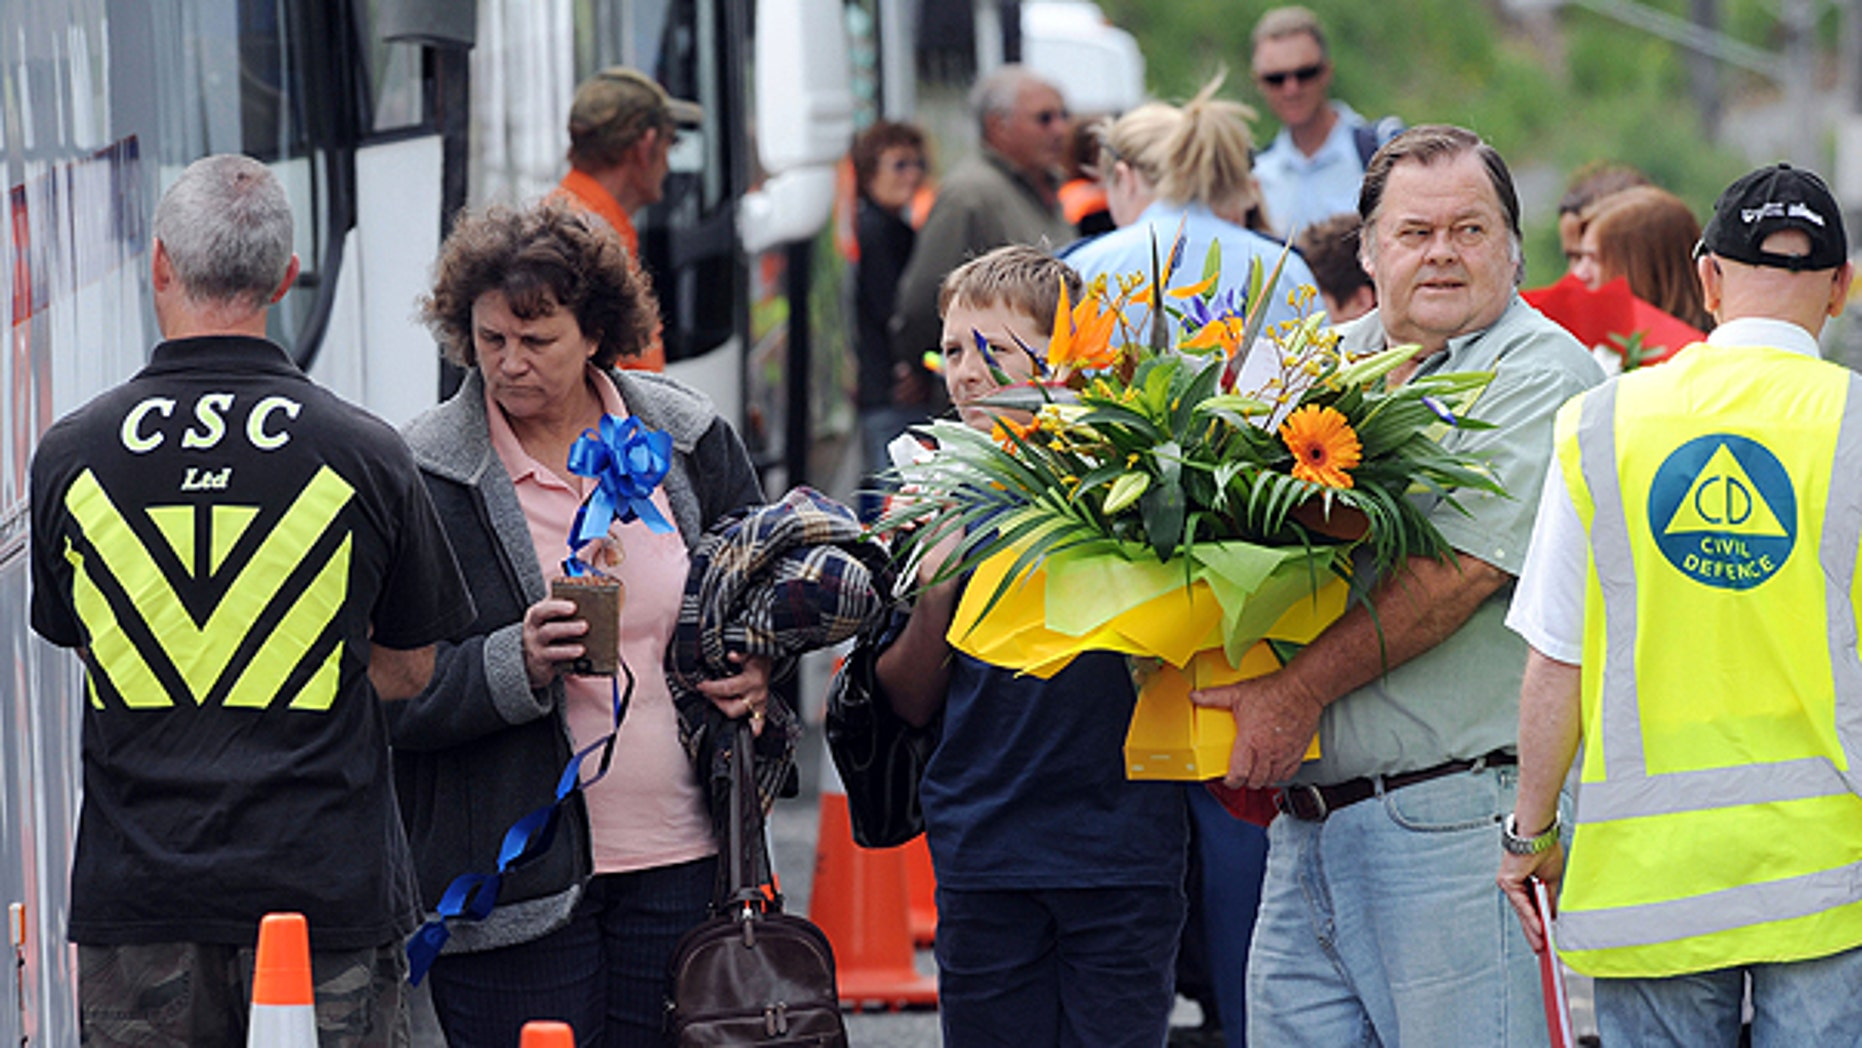 Nov. 27: Family members catch buses to visit the Pike River Coal mine where 29 miners are killed after being trapped underground following an explosion in Greymouth, New Zealand.